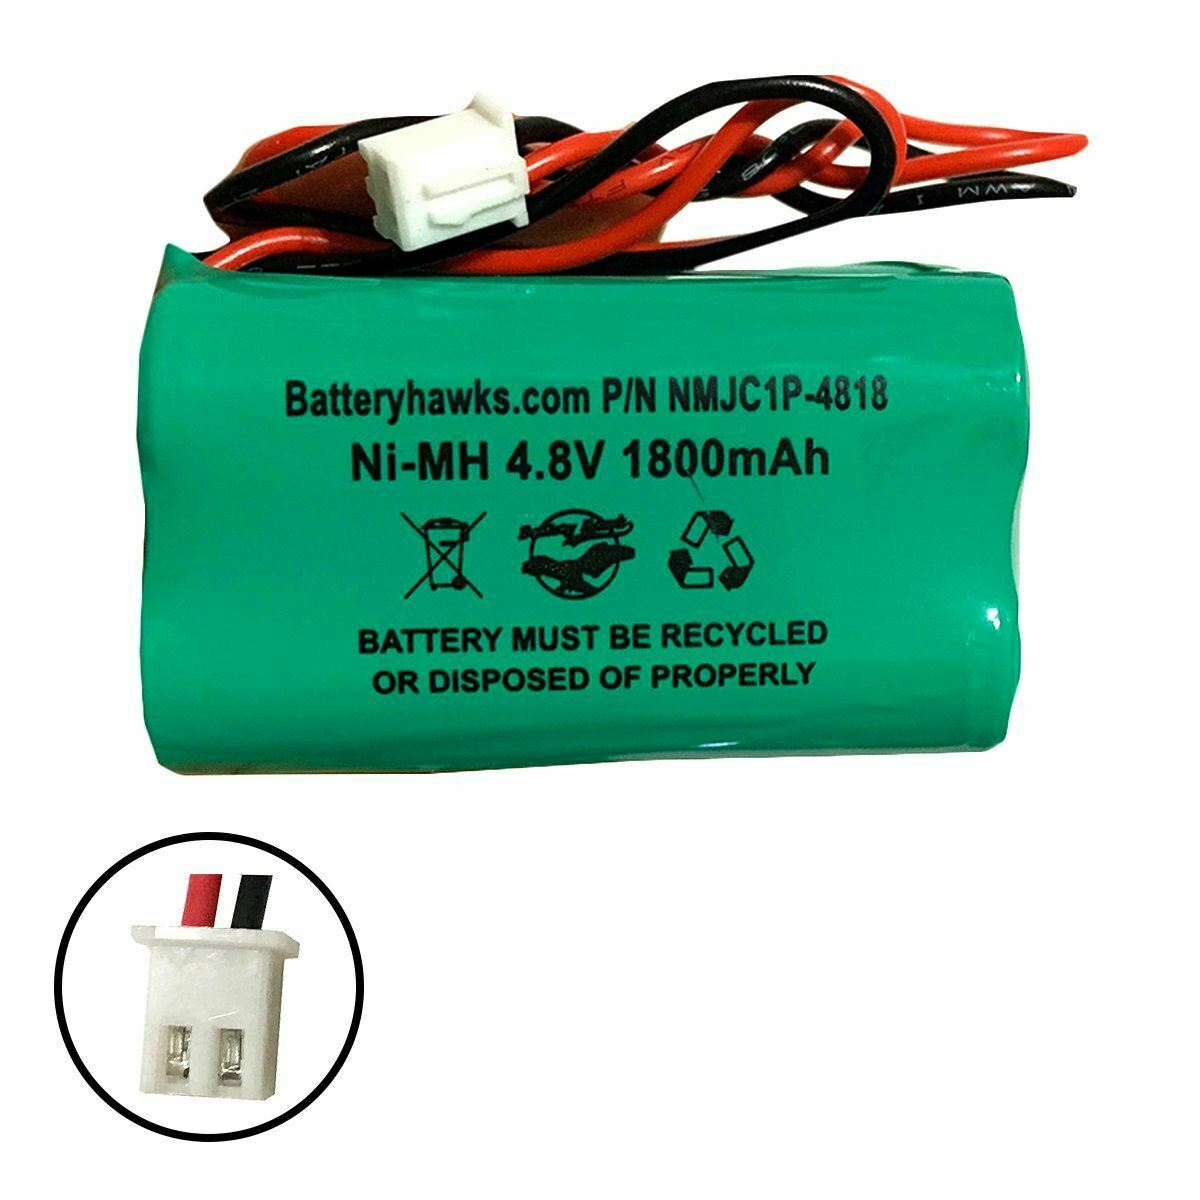 Battery Hawks 4.8v 1800mah Ni-MH AA Battery Pack Replacement